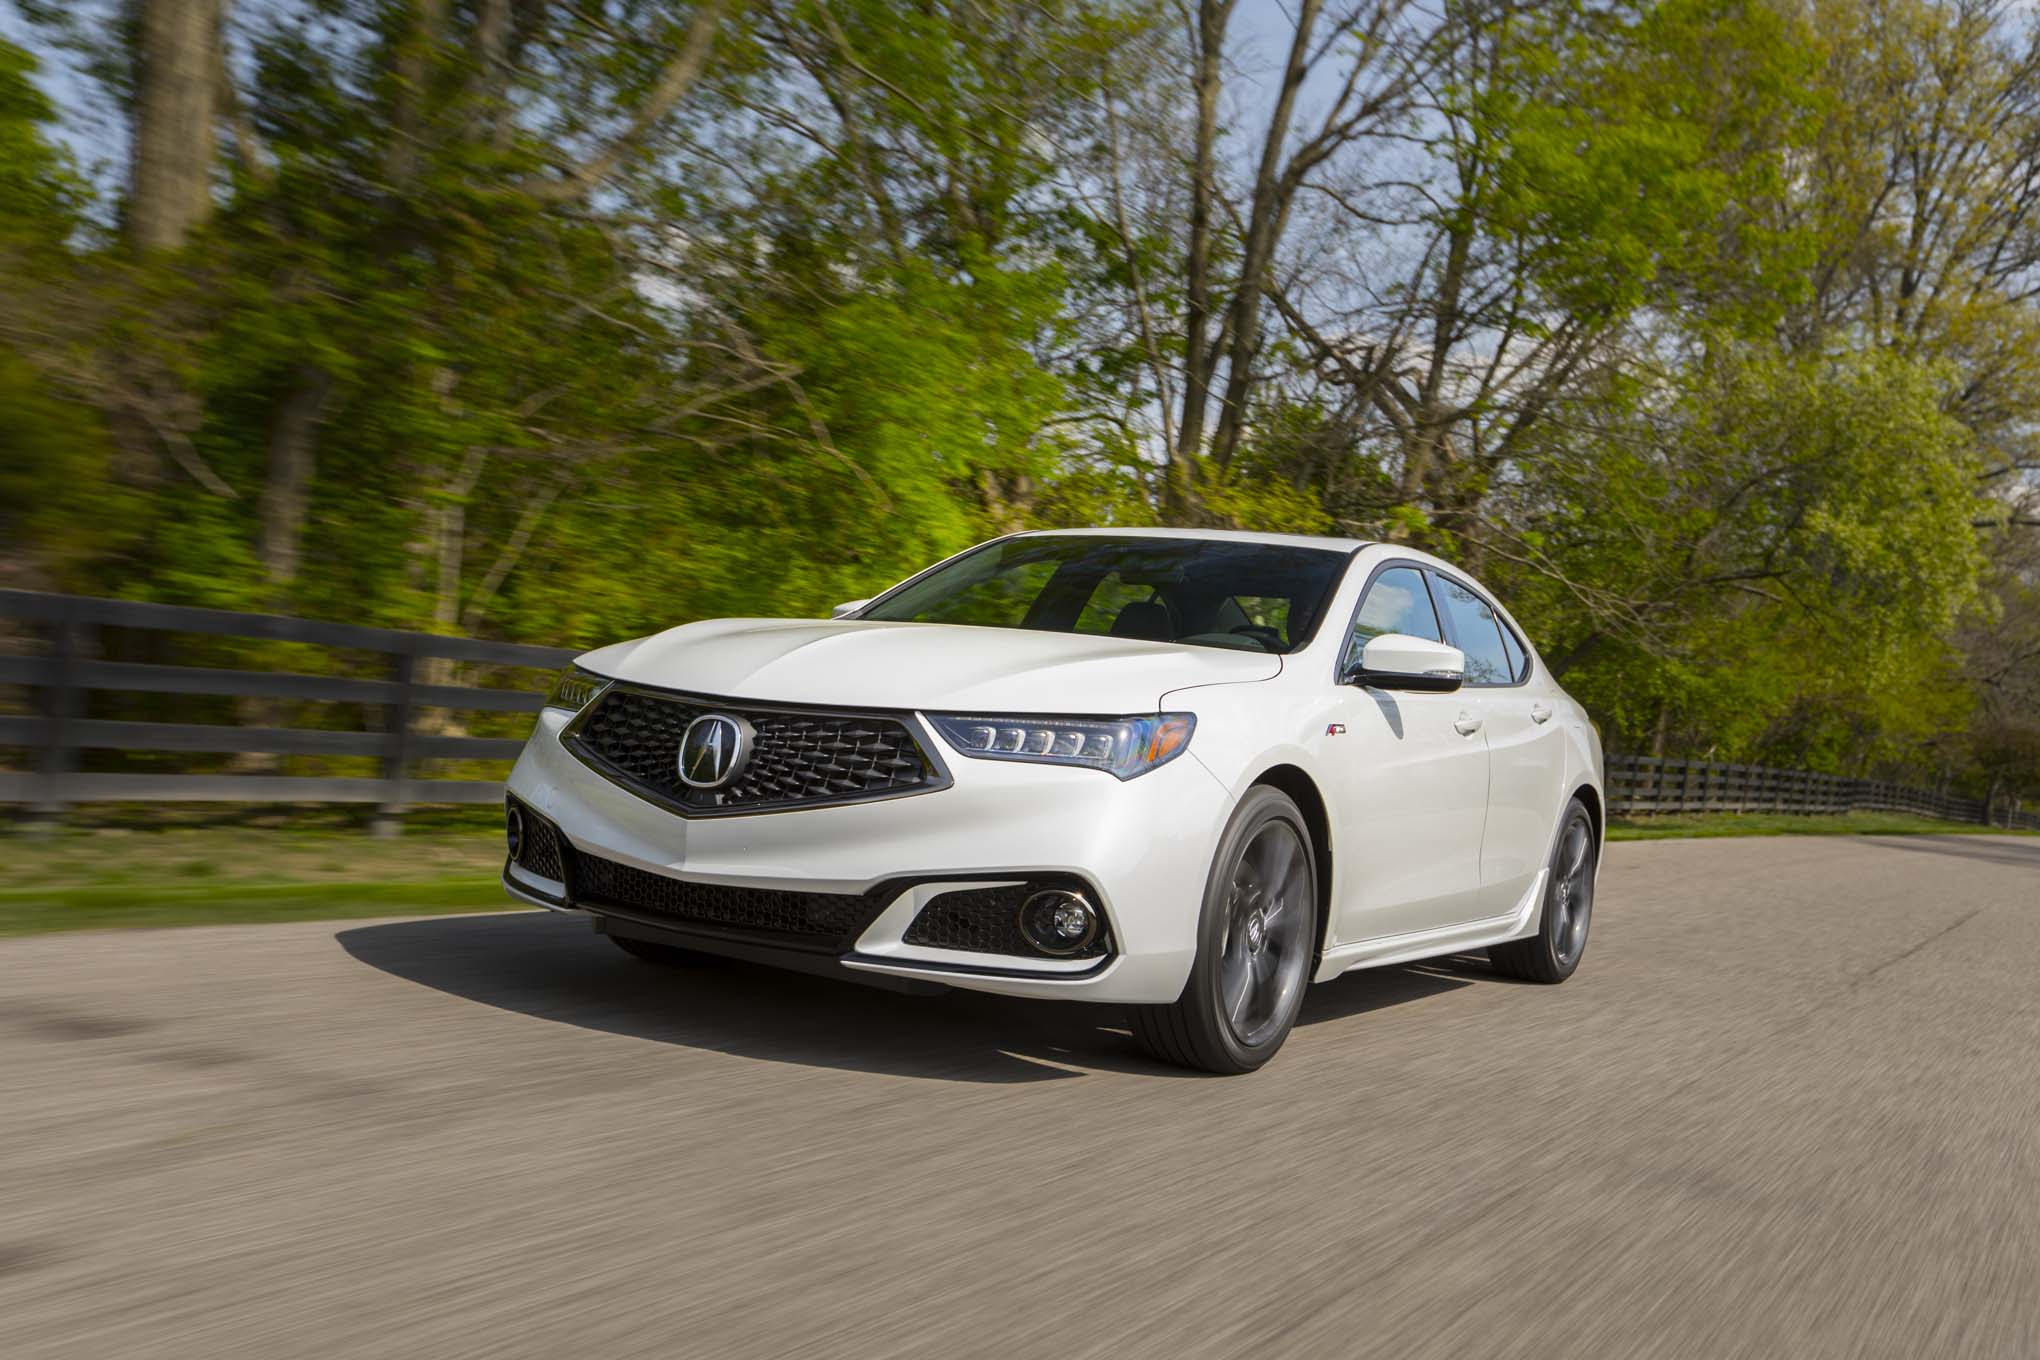 2018 Acura TLX SH-AWD A-Spec First Drive Review